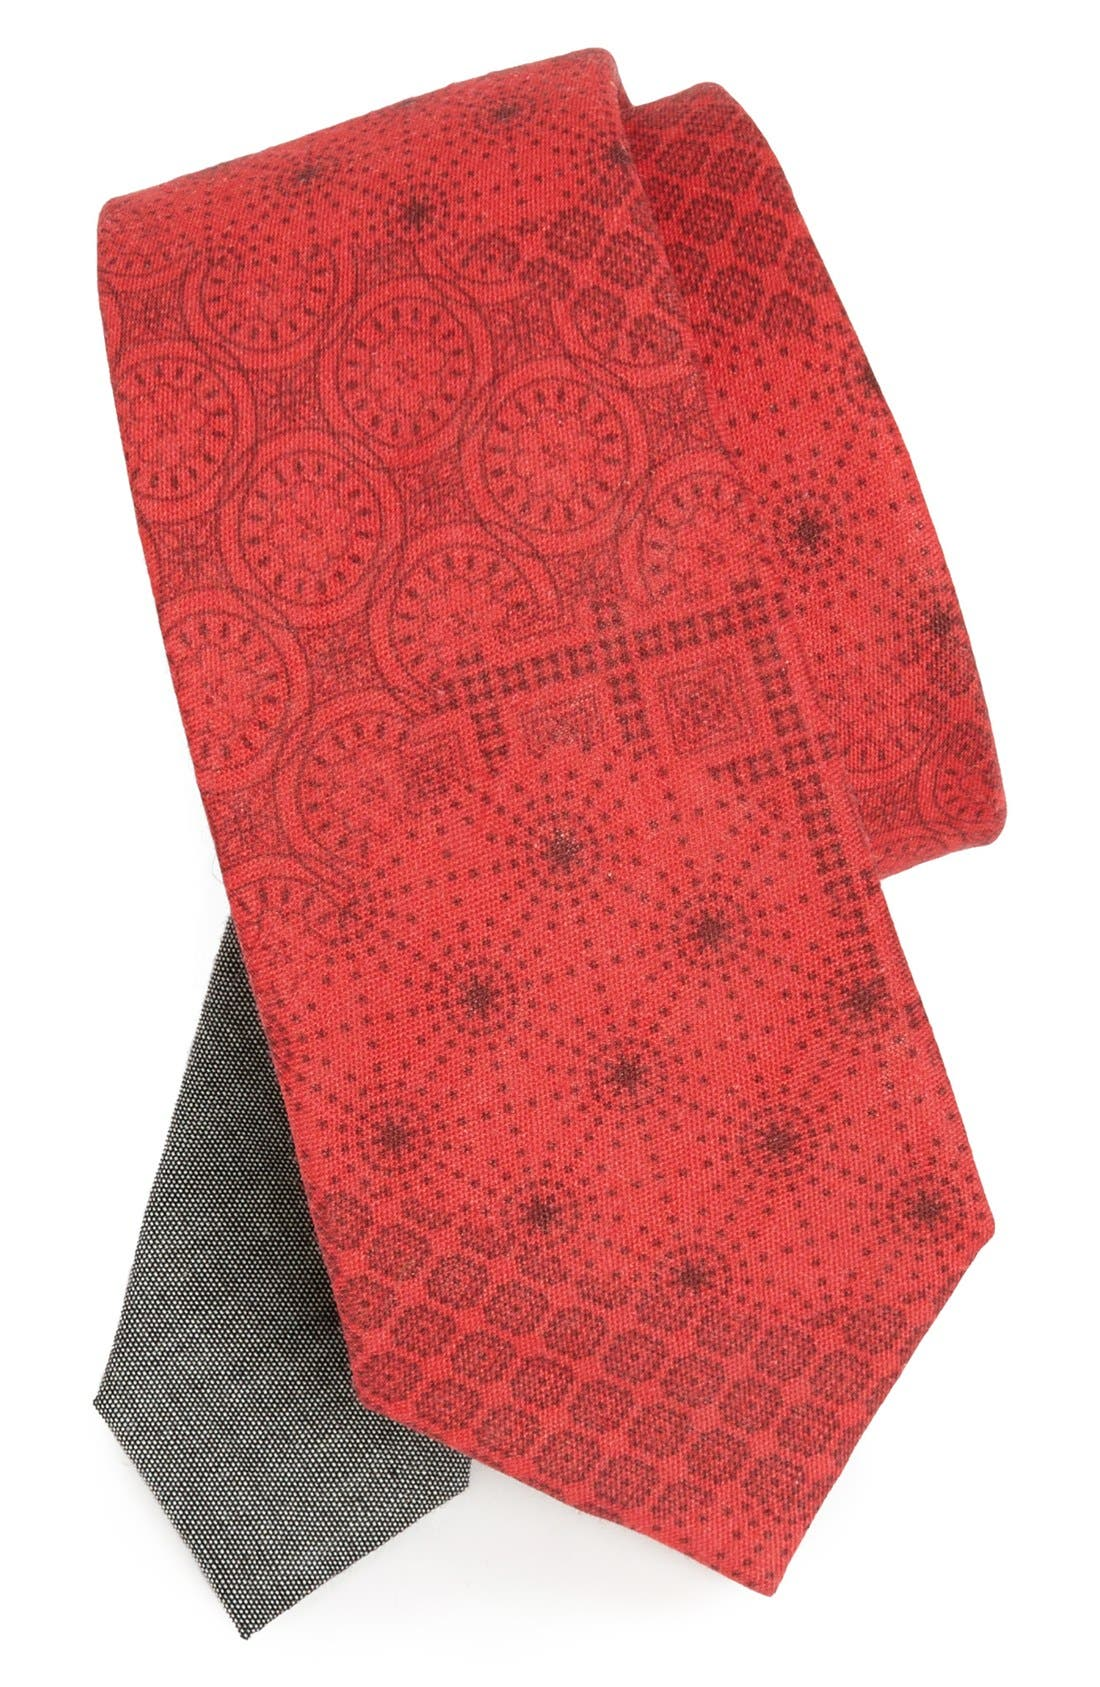 Main Image - EDIT by The Tie Bar Geometric Linen Tie (Nordstrom Exclusive)